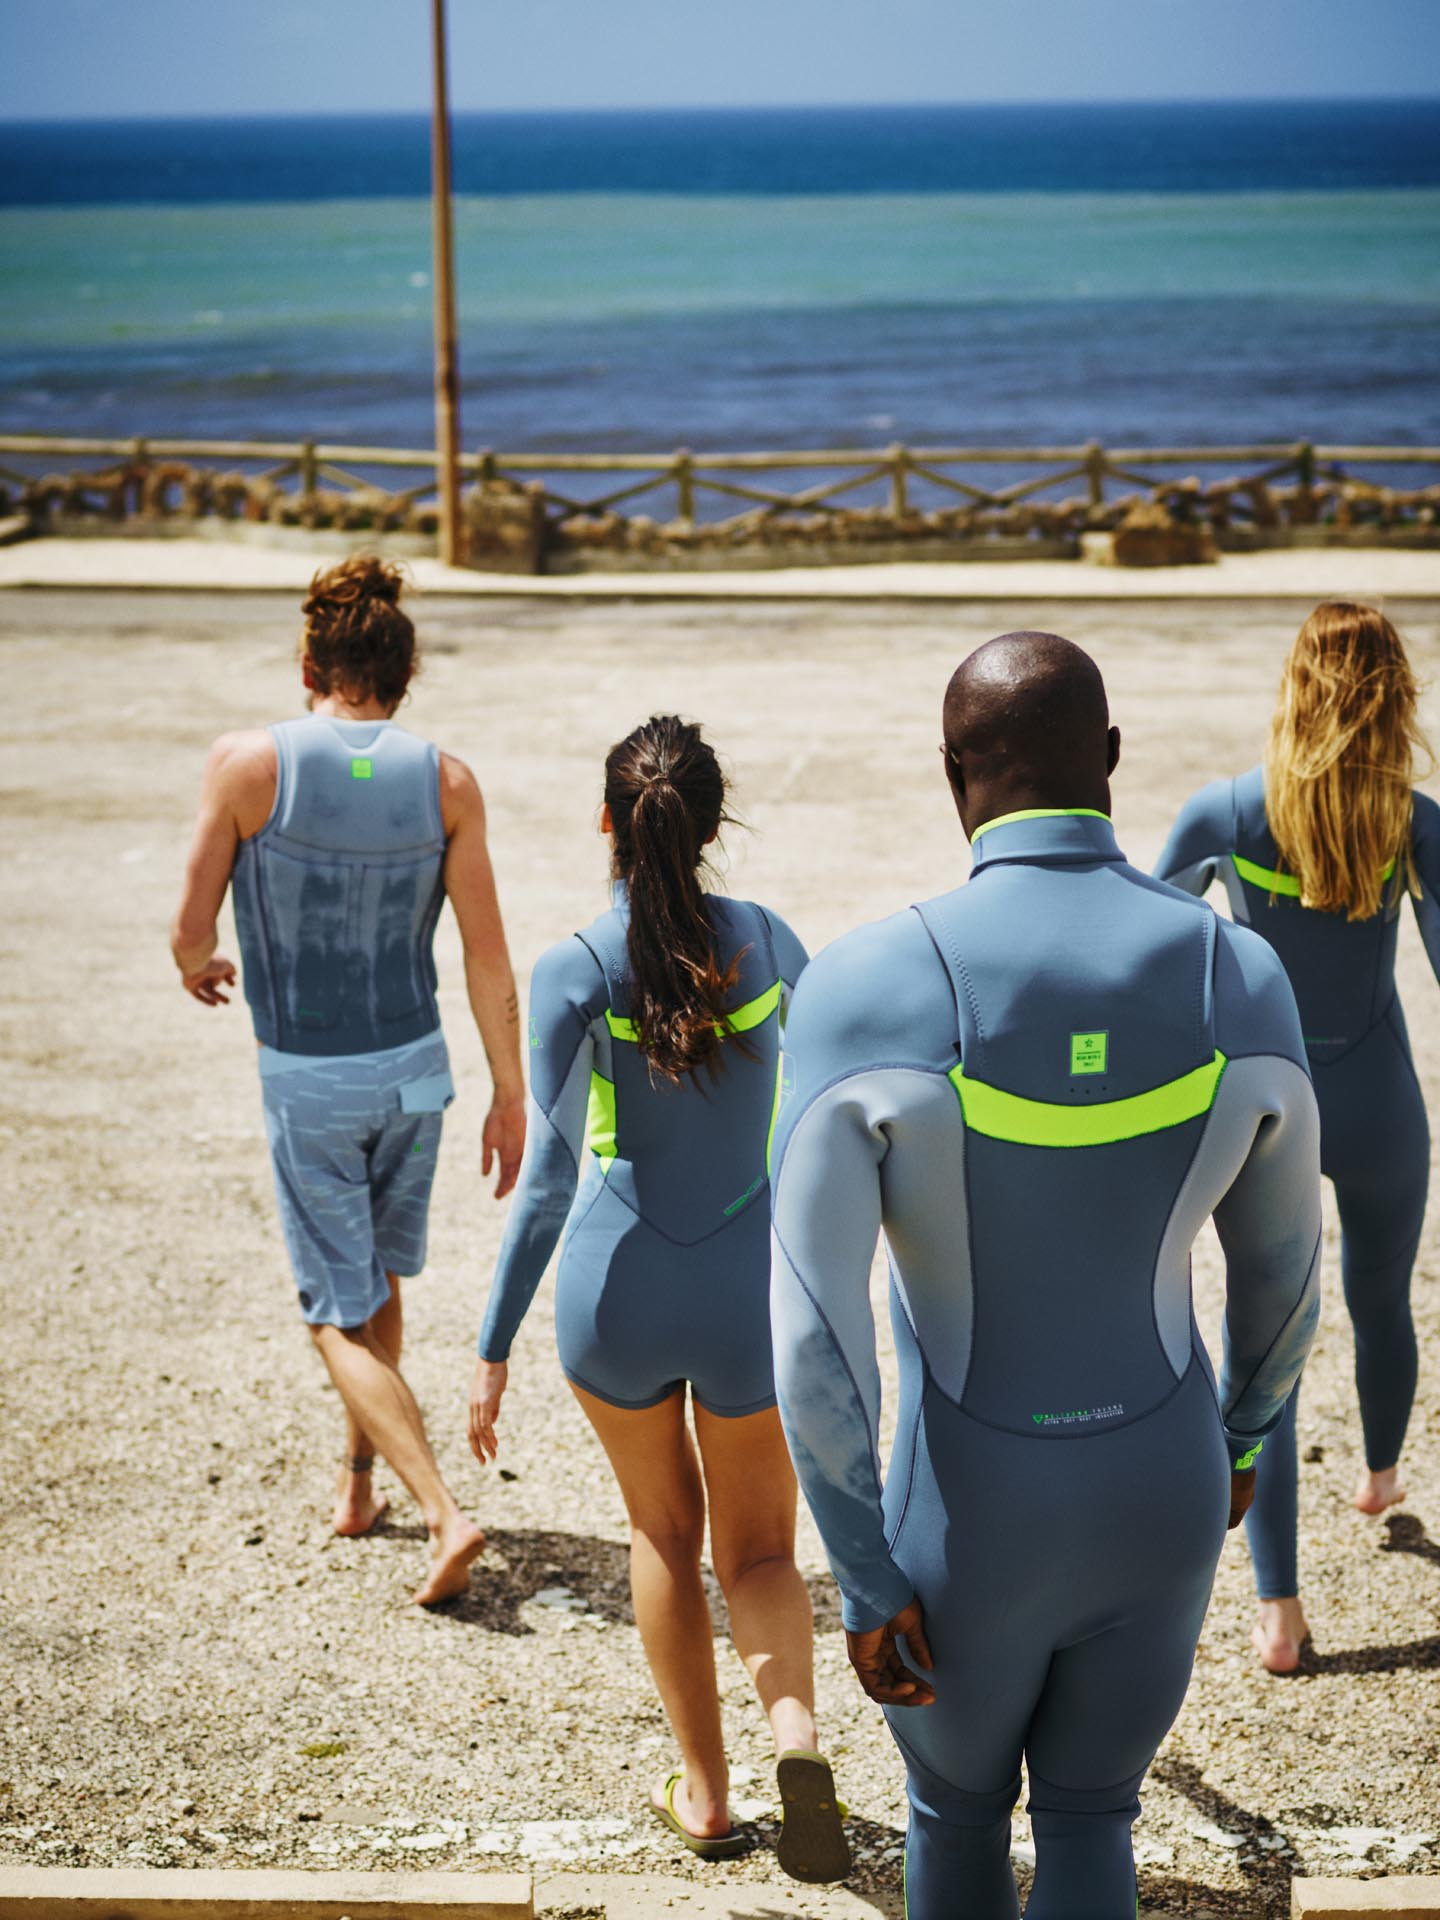 Choose your wetsuit wisely: Temperature matters